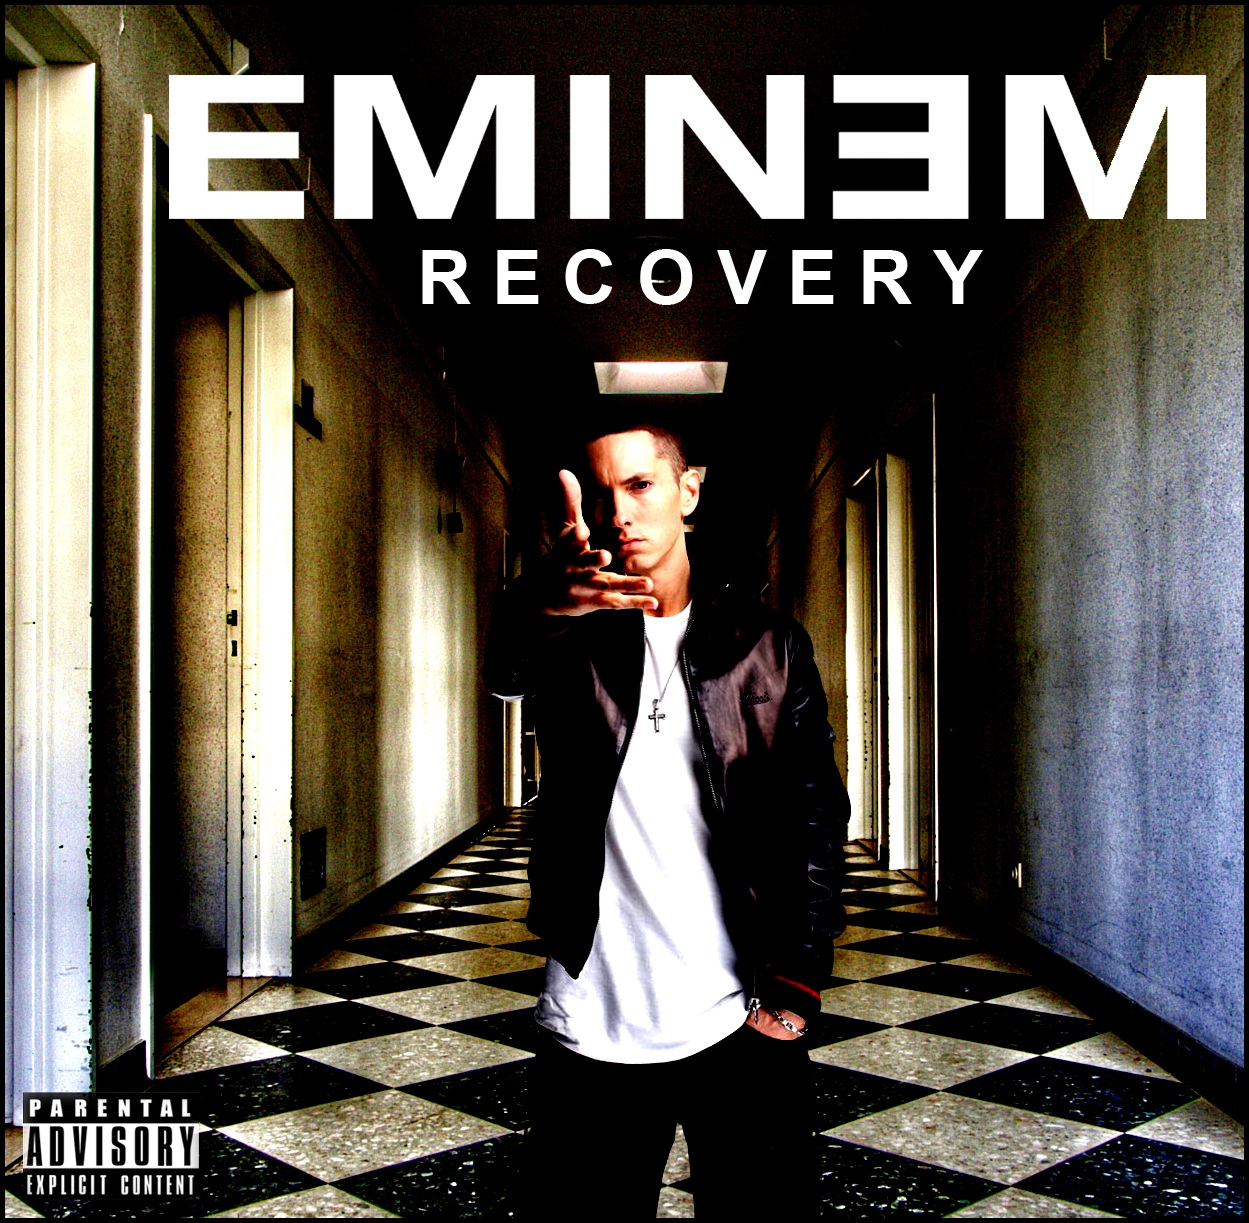 eminem quotes from songs recovery - photo #33